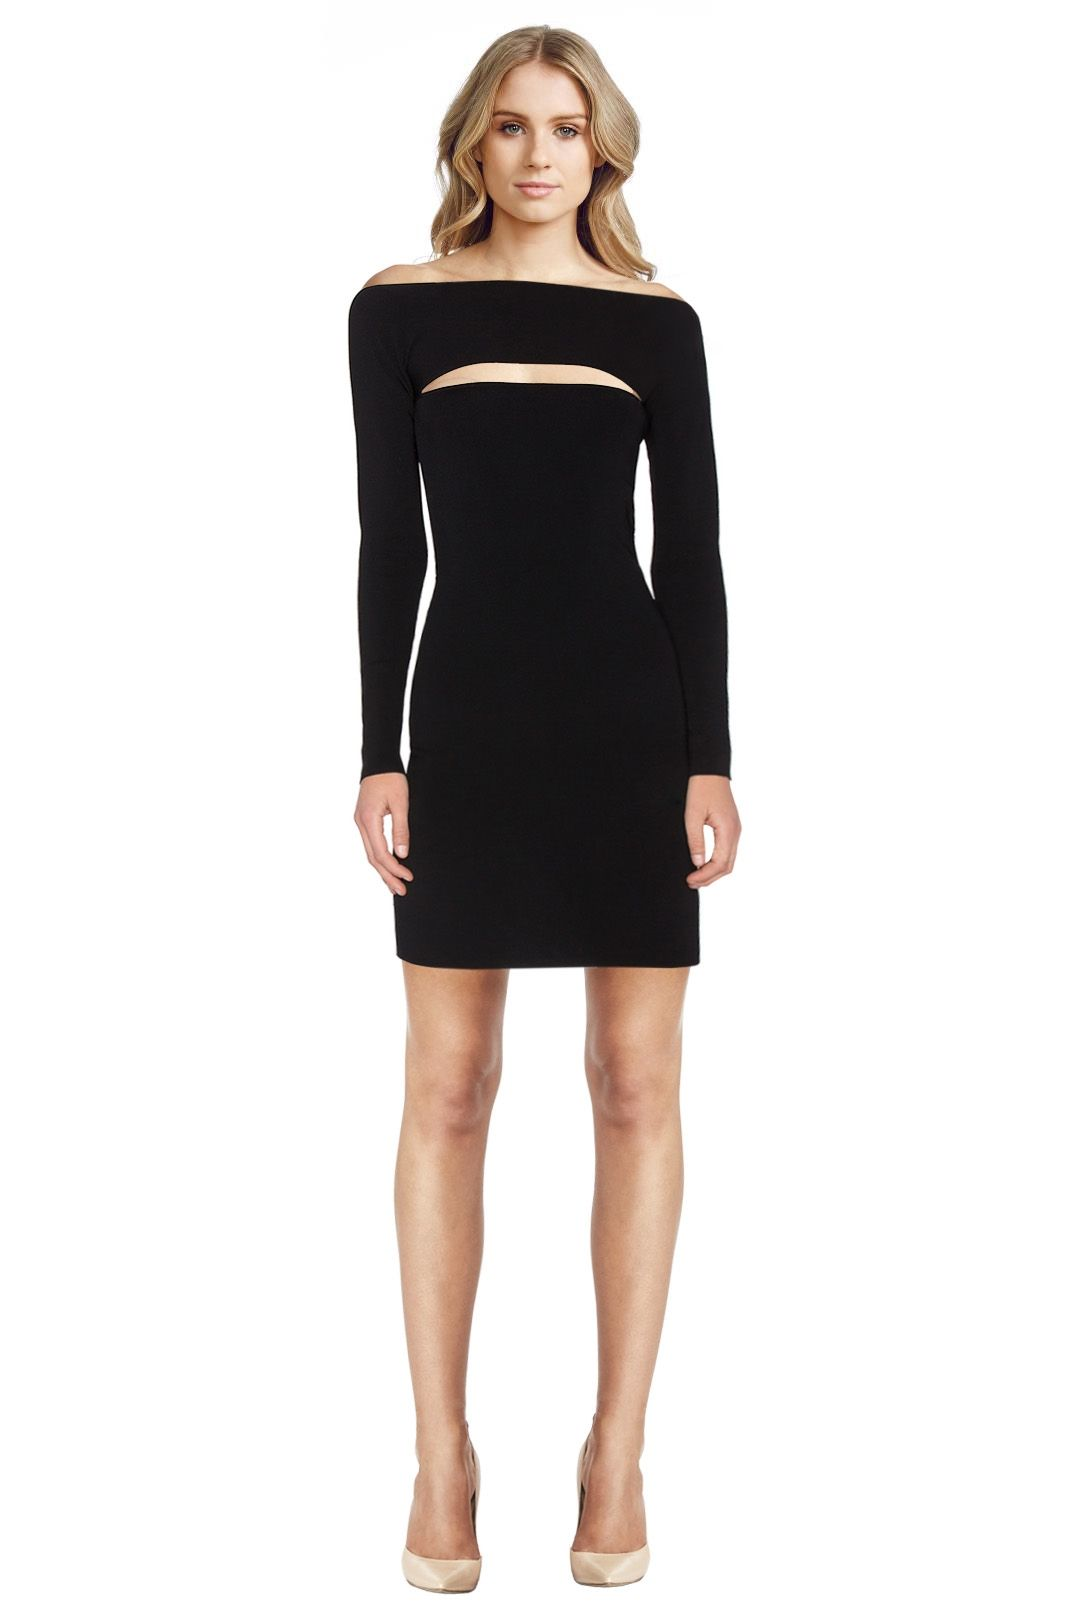 T by Alexander Wang - Needle Knit Long Sleeve Dress - Black - Front